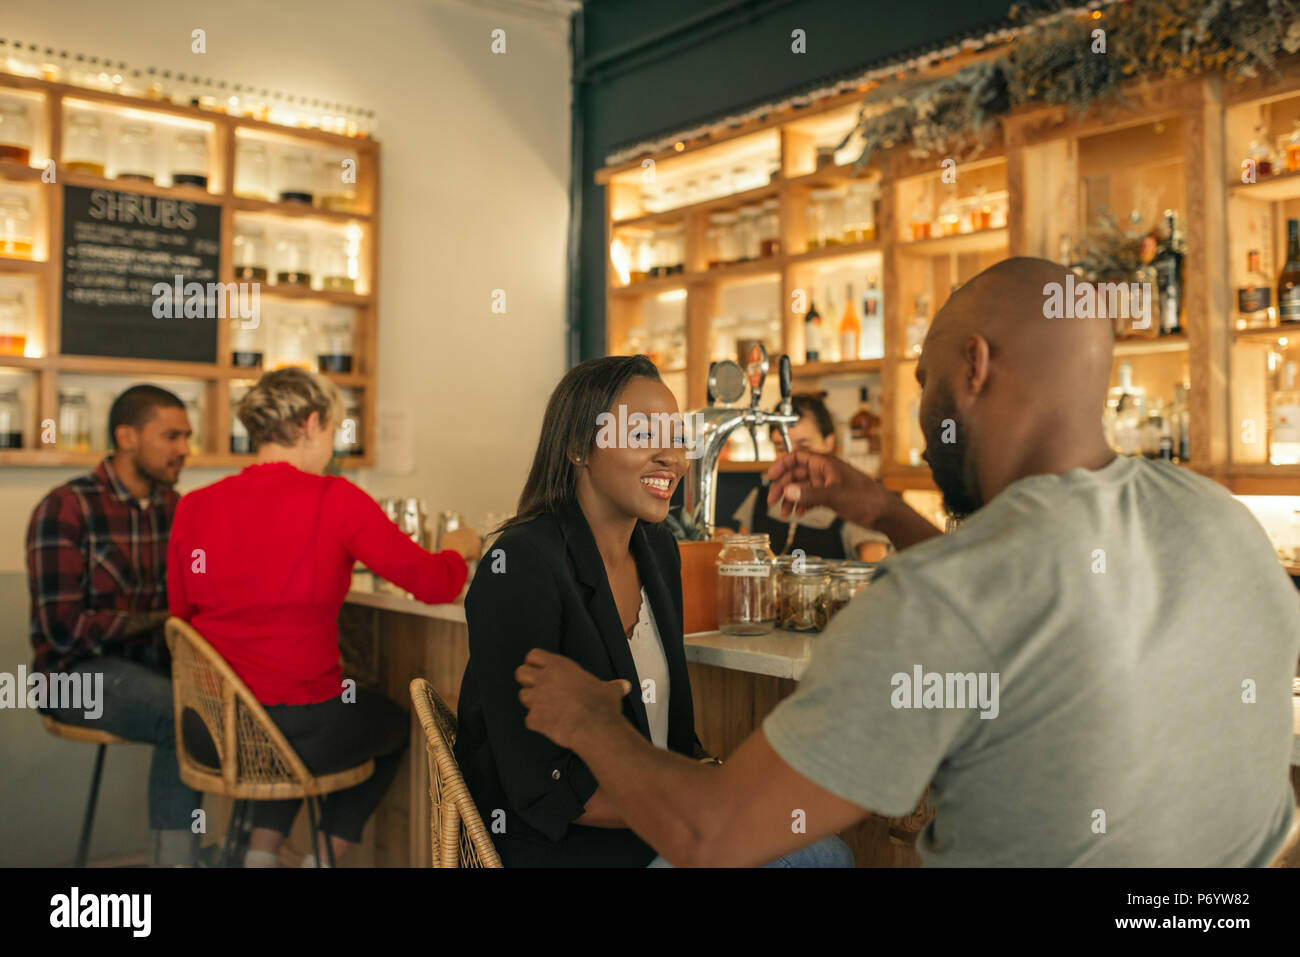 Smiling African American couple prendre un verre ensemble dans un bar Photo Stock